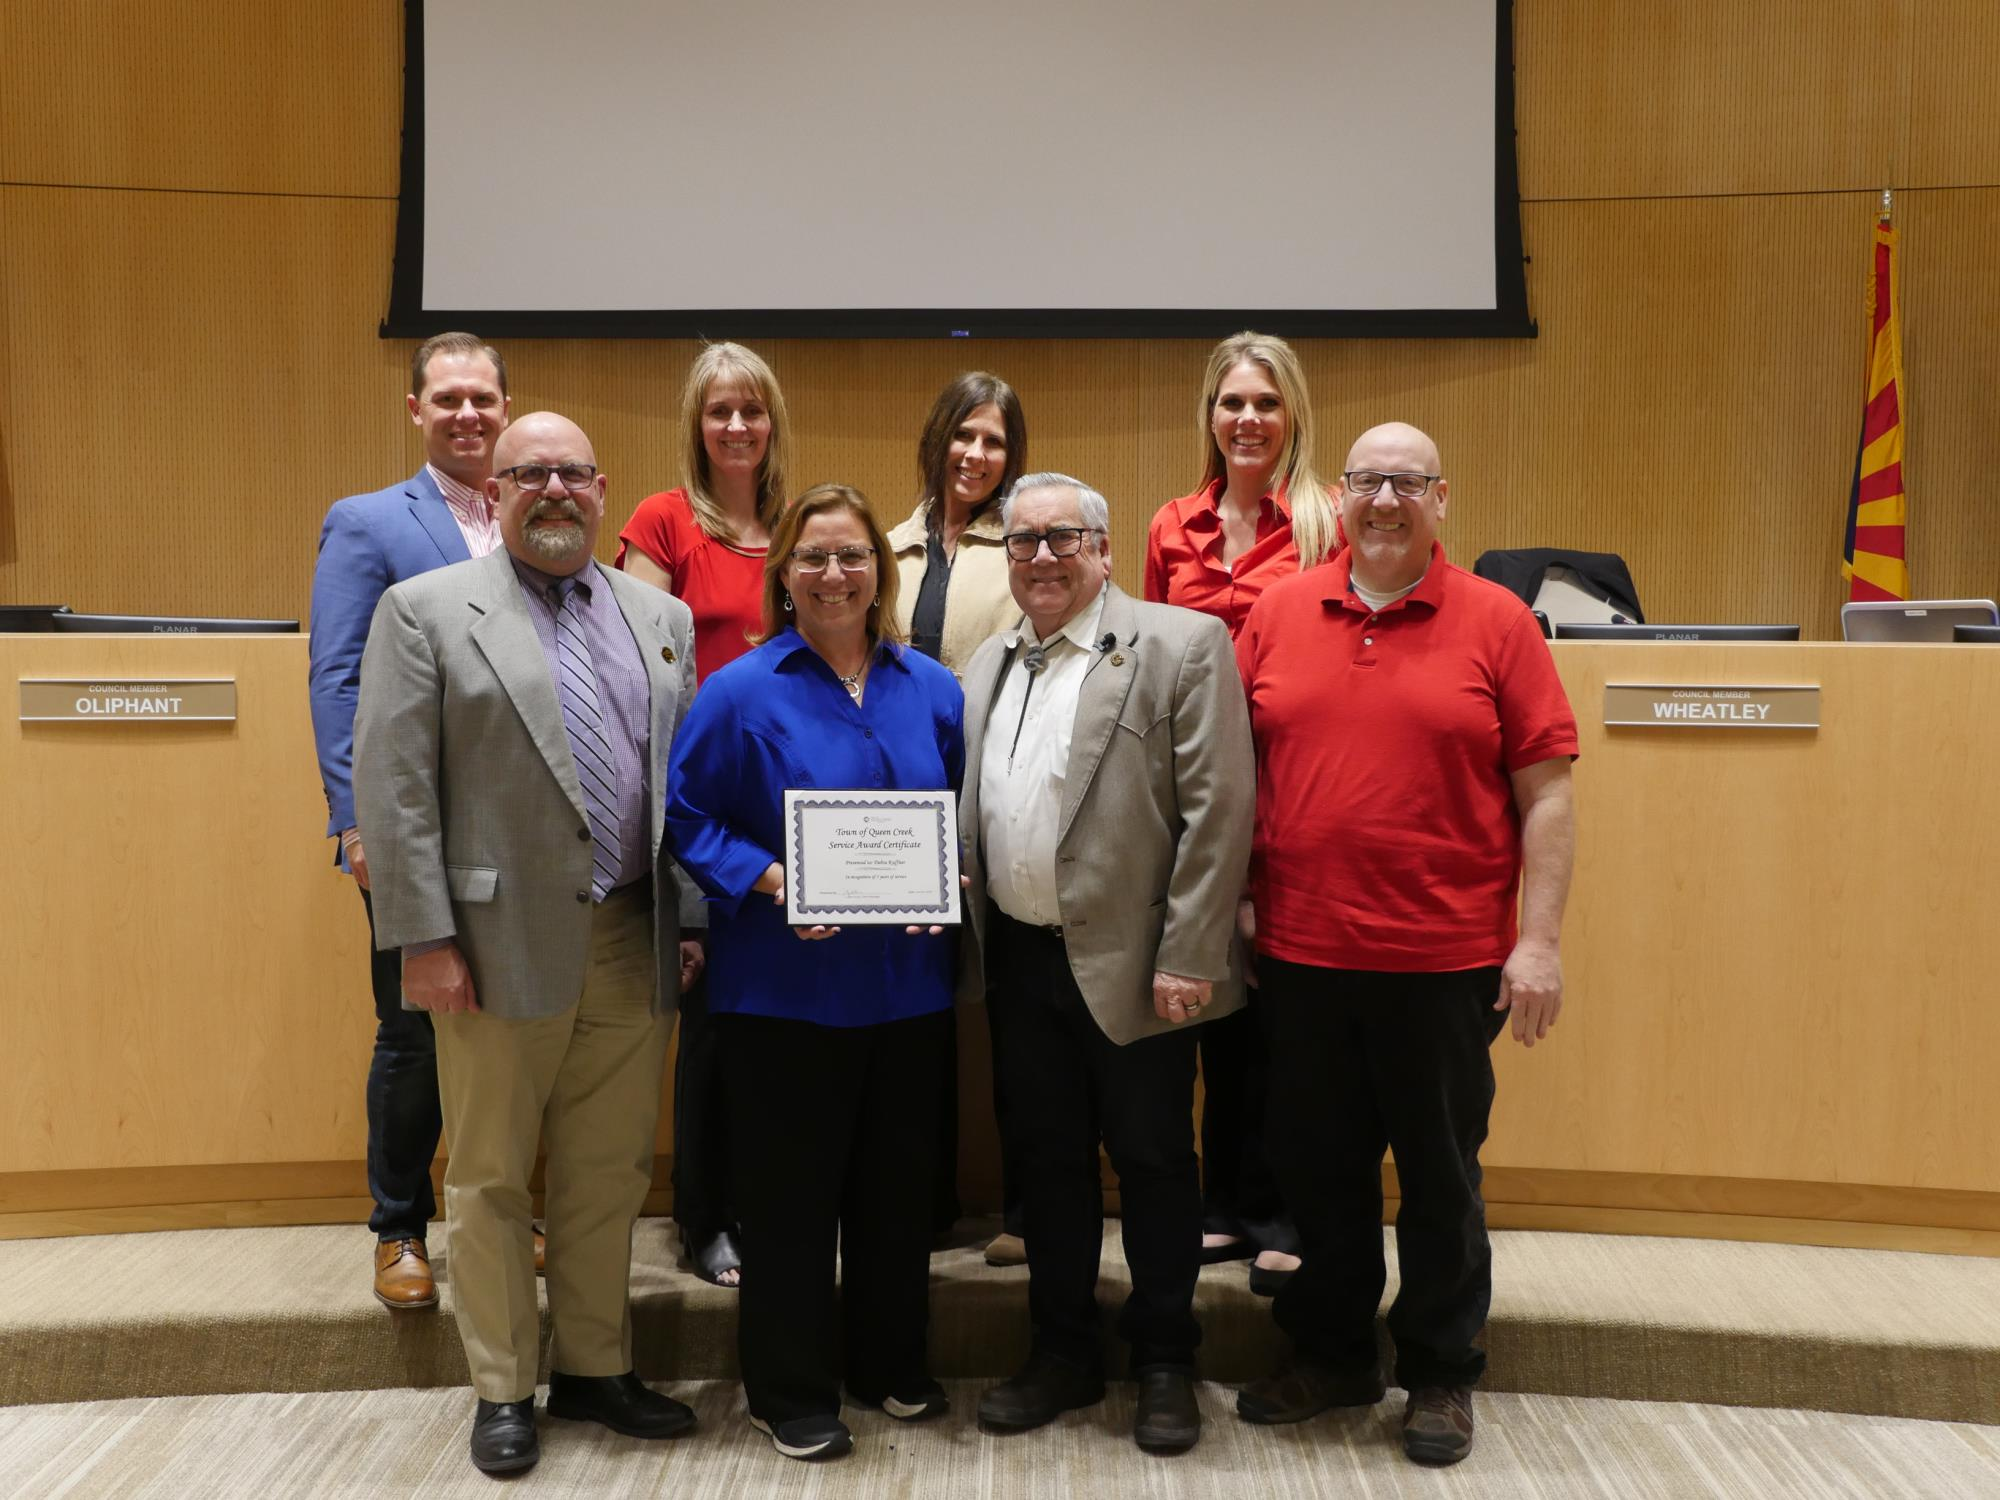 Mayor Barney and the Town Council with Debra Kuffner at the February 6 Town Council Meeting